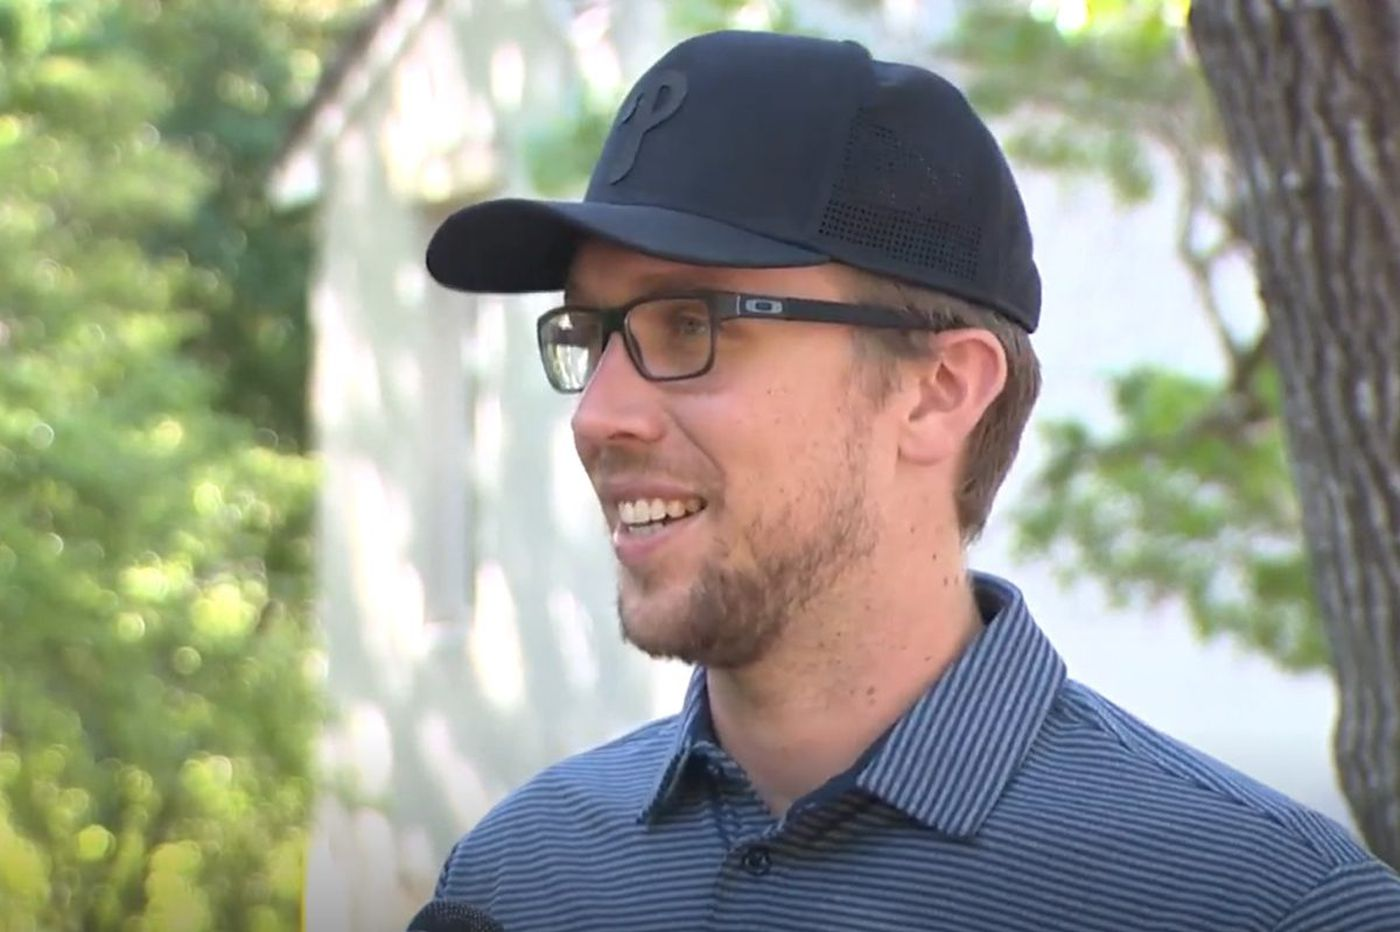 Eagles QB Nick Foles on wanting a starting job, wearing a disguise in public